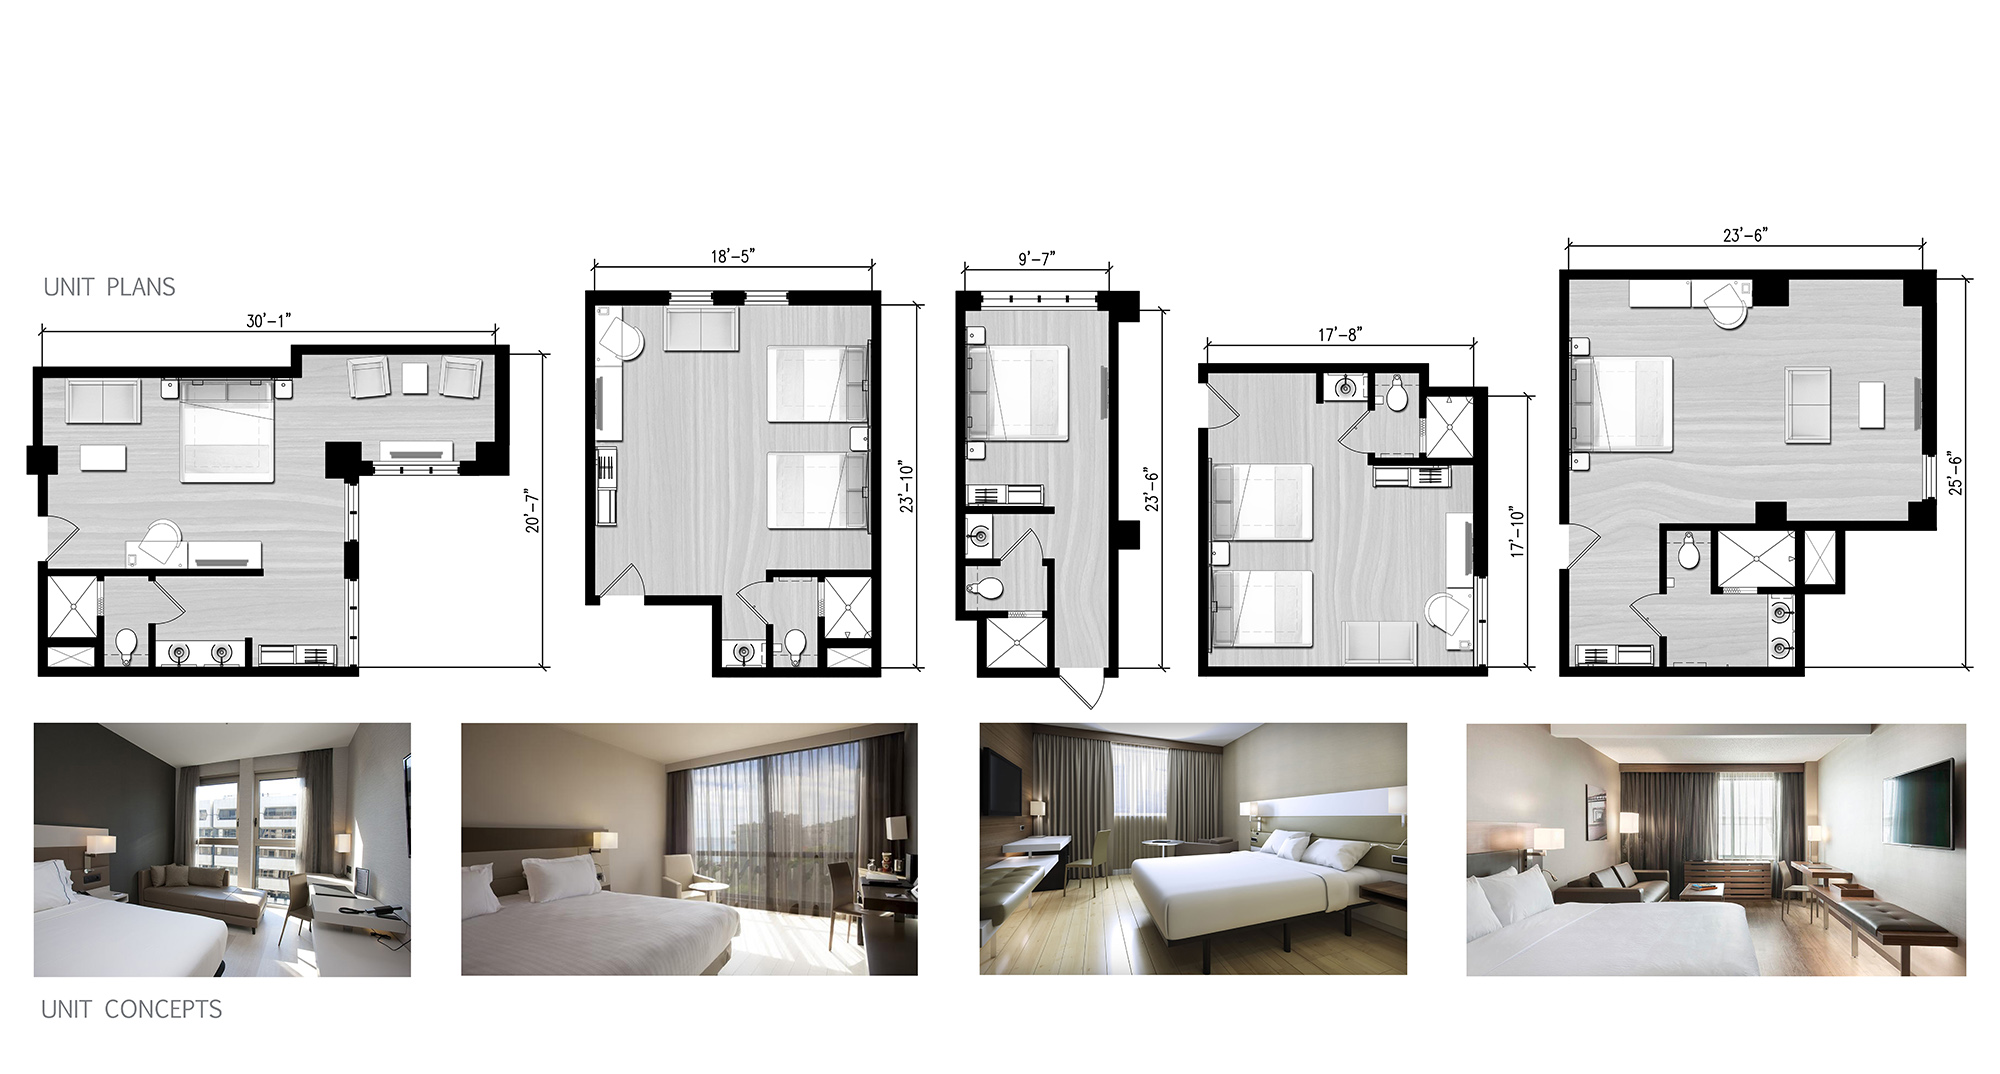 Taylor Room Unit Plan Board_copy